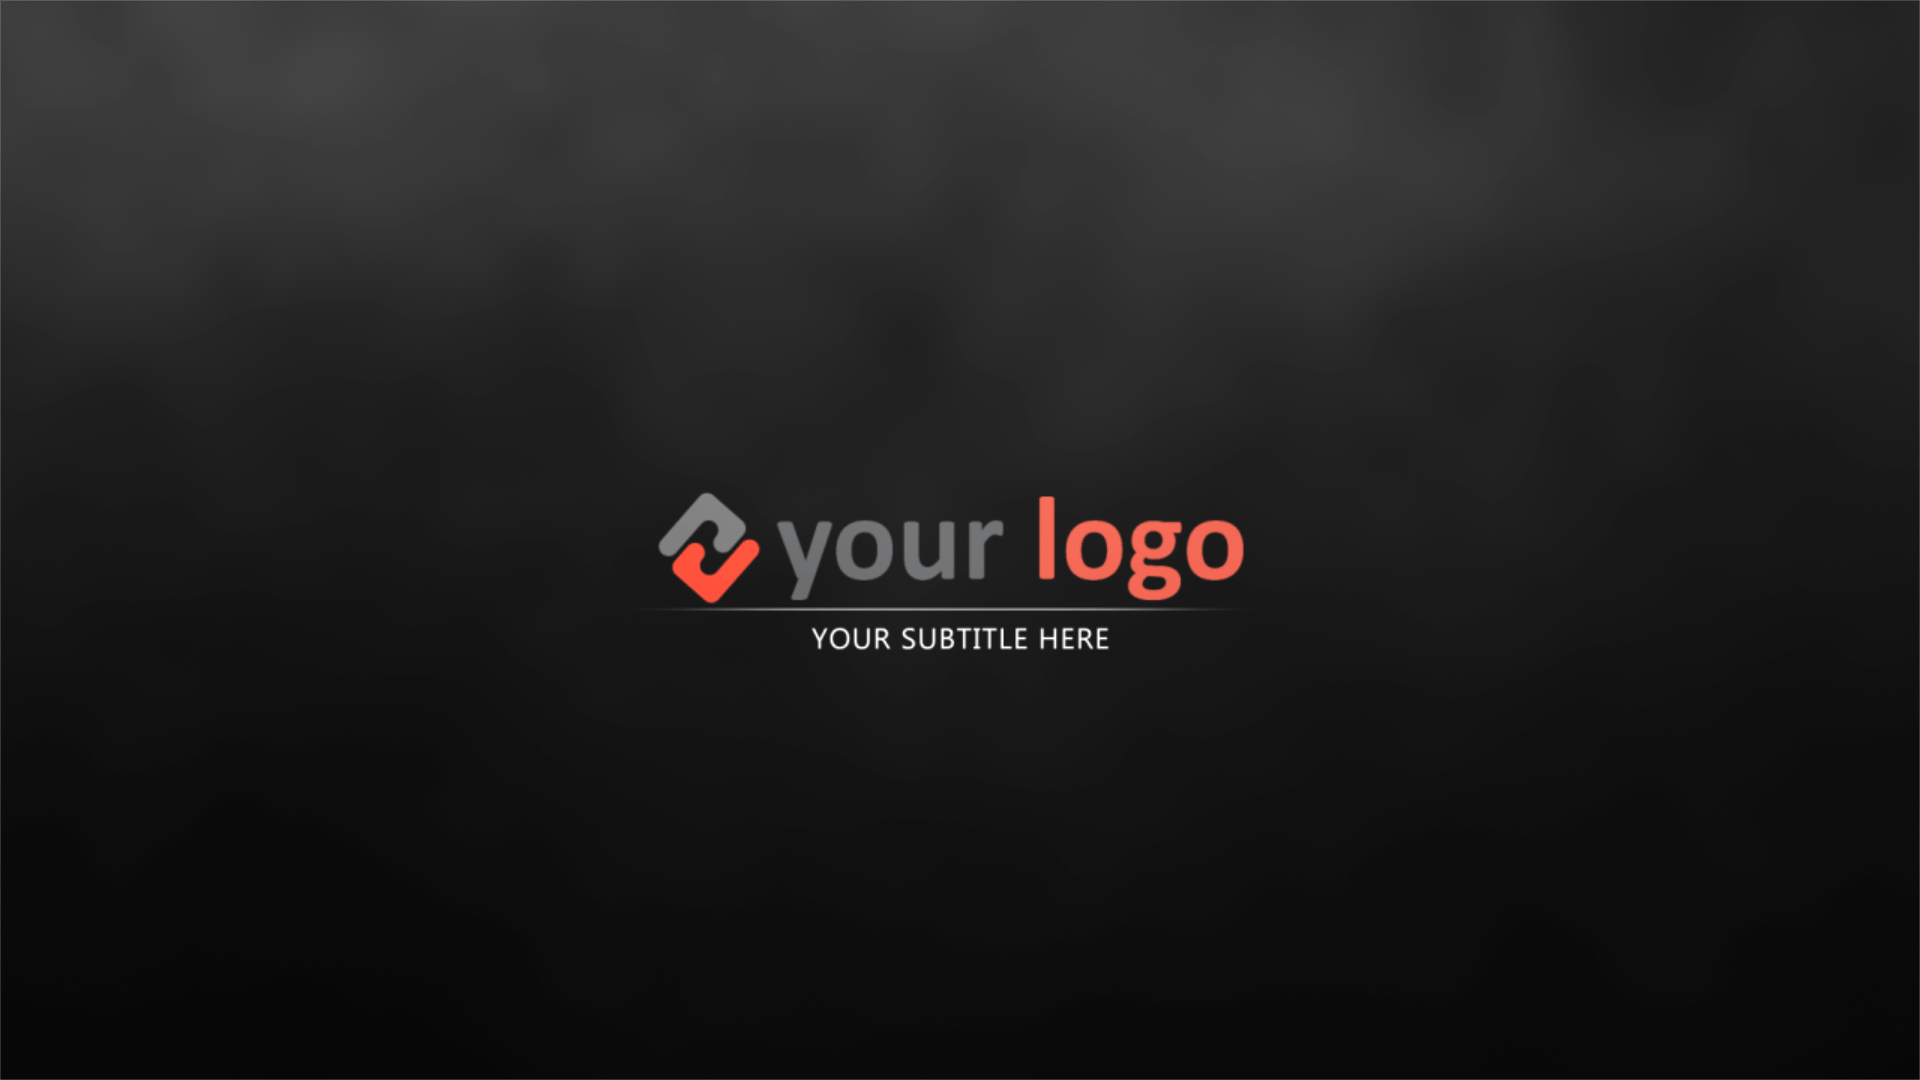 Customize the text for Electric Swish - Logo to view your free intro movie.